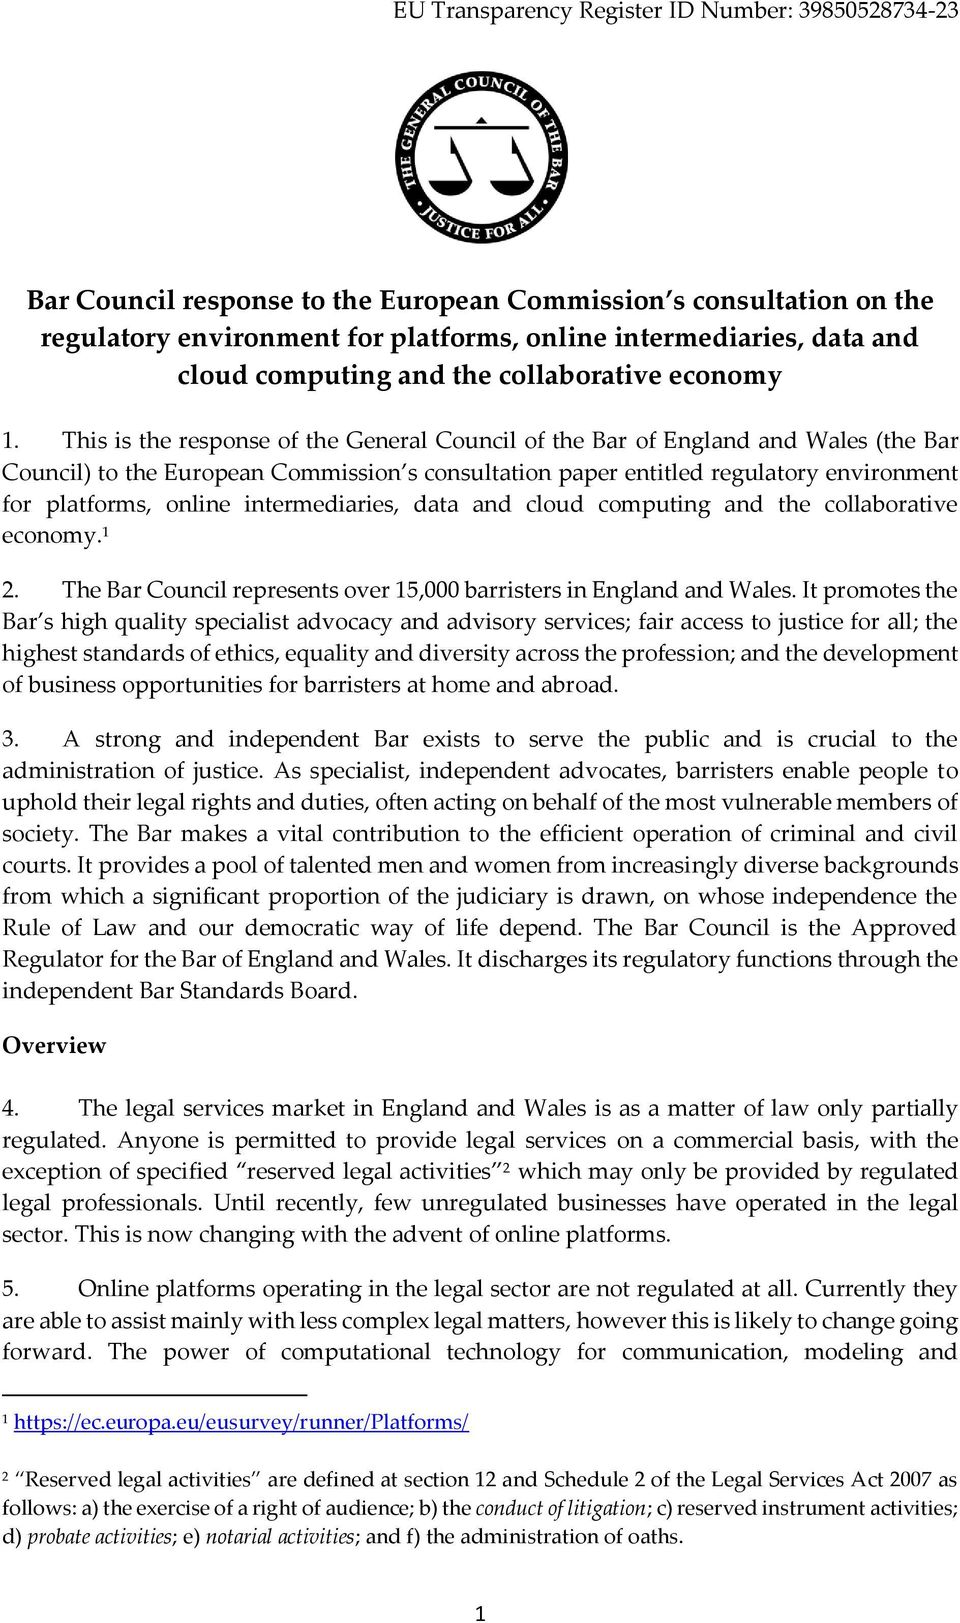 intermediaries, data and cloud computing and the collaborative economy. 1 2. The Bar Council represents over 15,000 barristers in England and Wales.